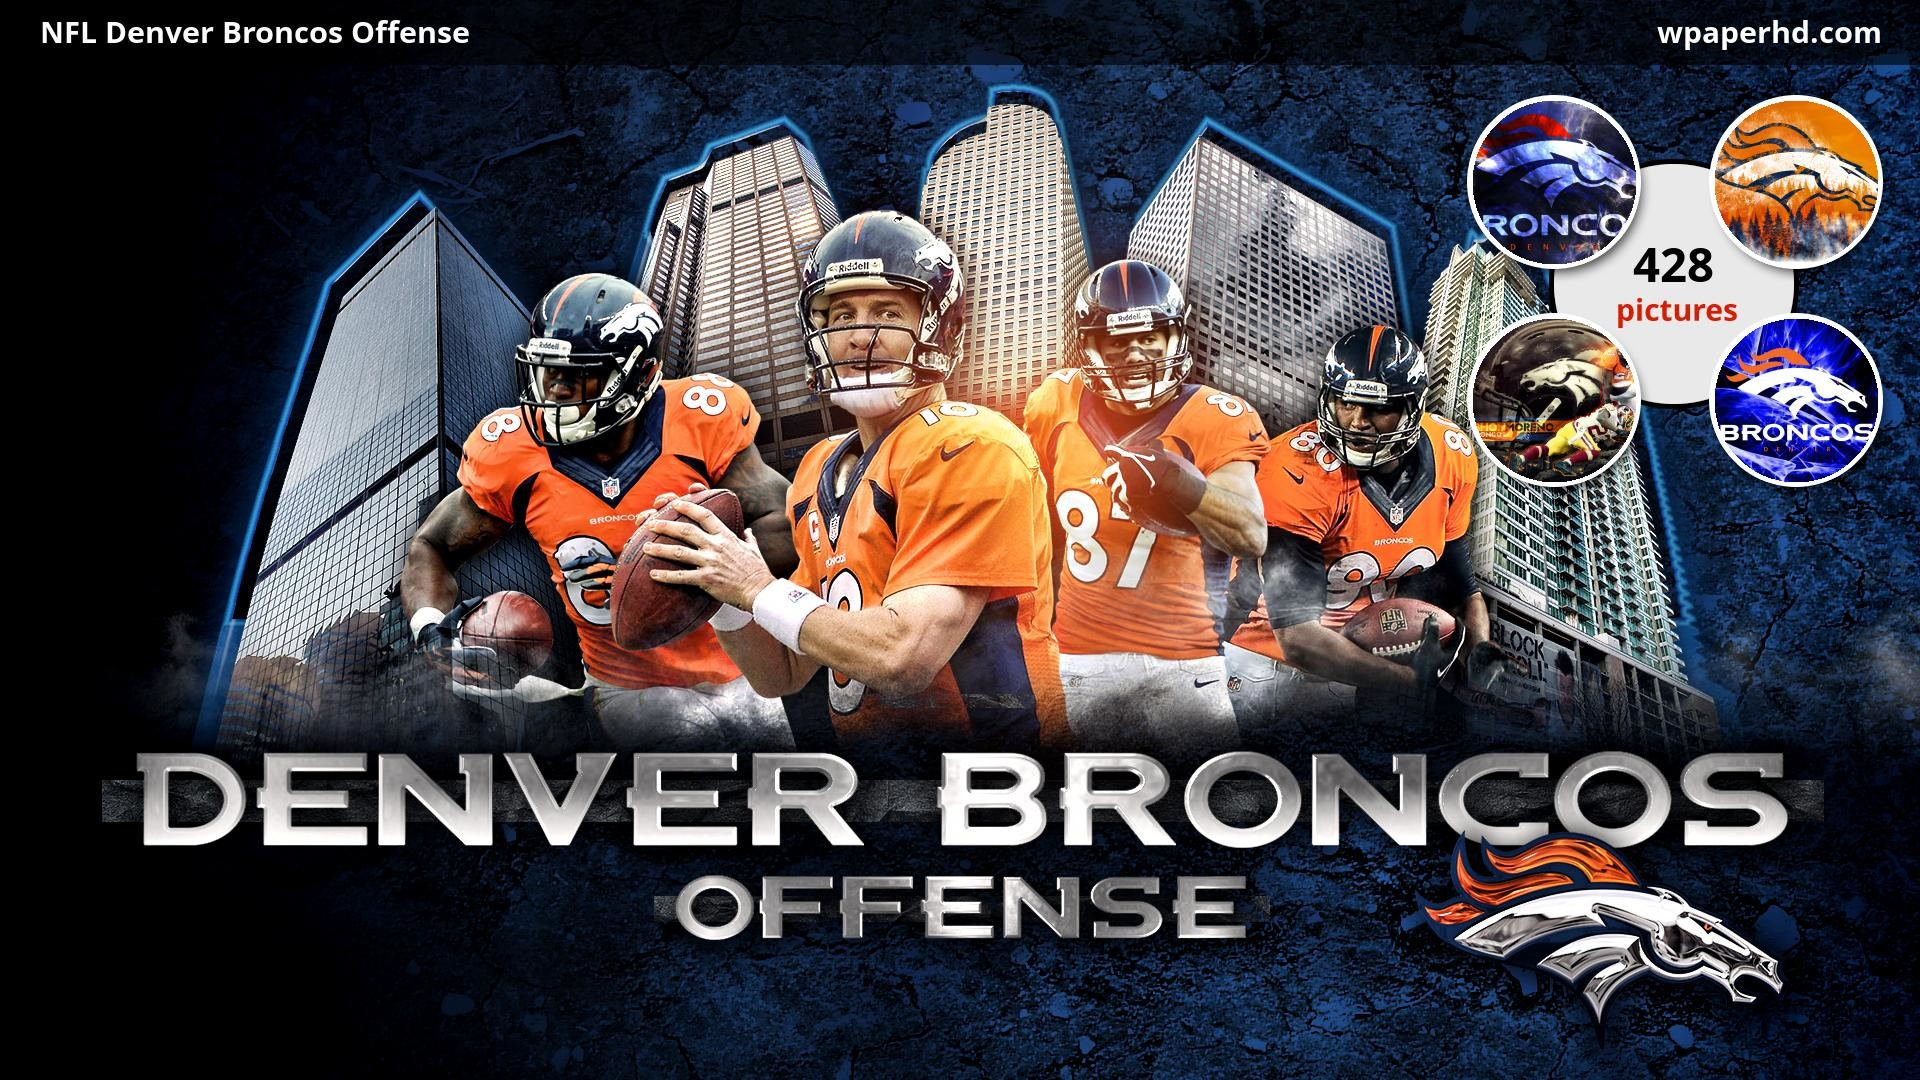 Res: 1920x1080, Description NFL Denver Broncos Offense wallpaper from Football category.  You are on page with NFL Denver Broncos Offense wallpaper ...